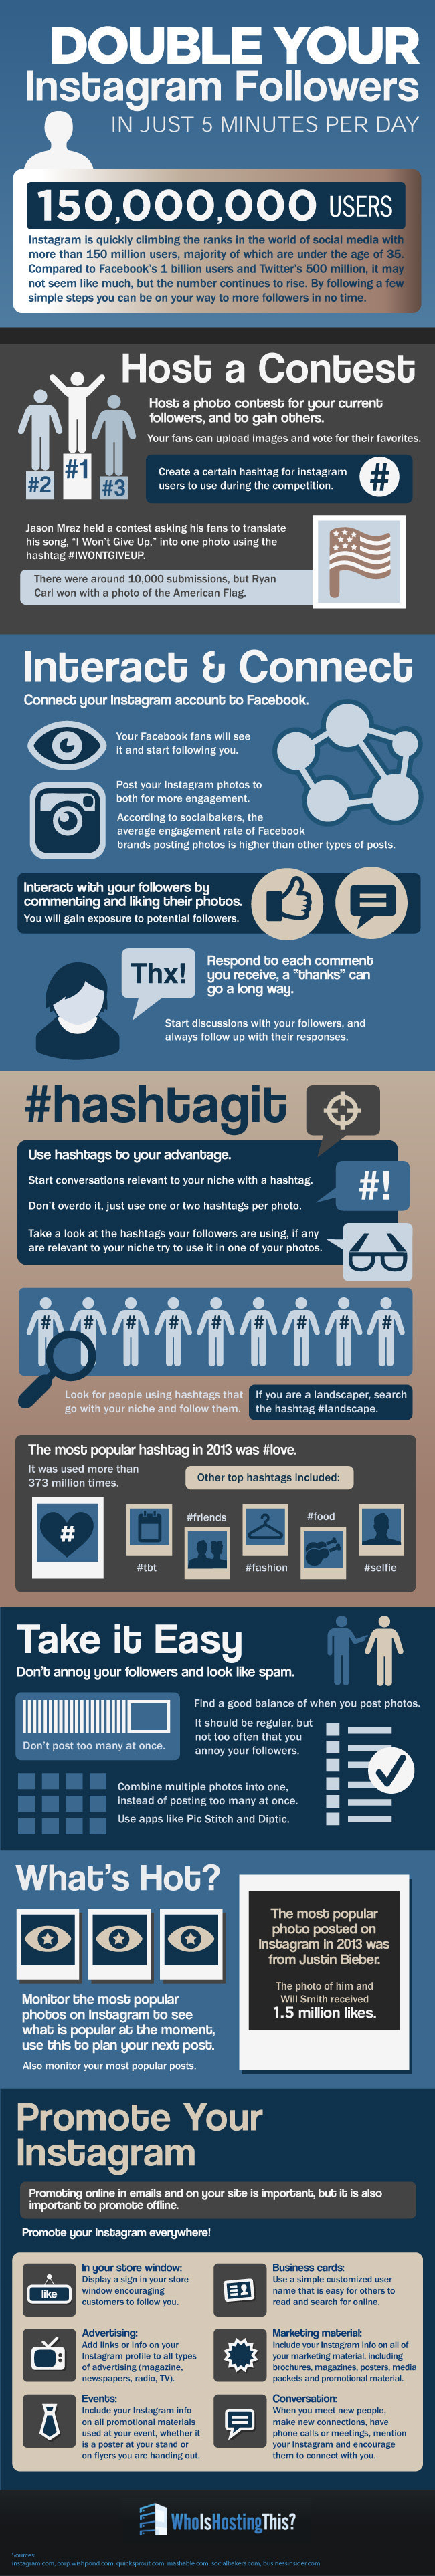 How To Boost Your Instagram Following - Infographic